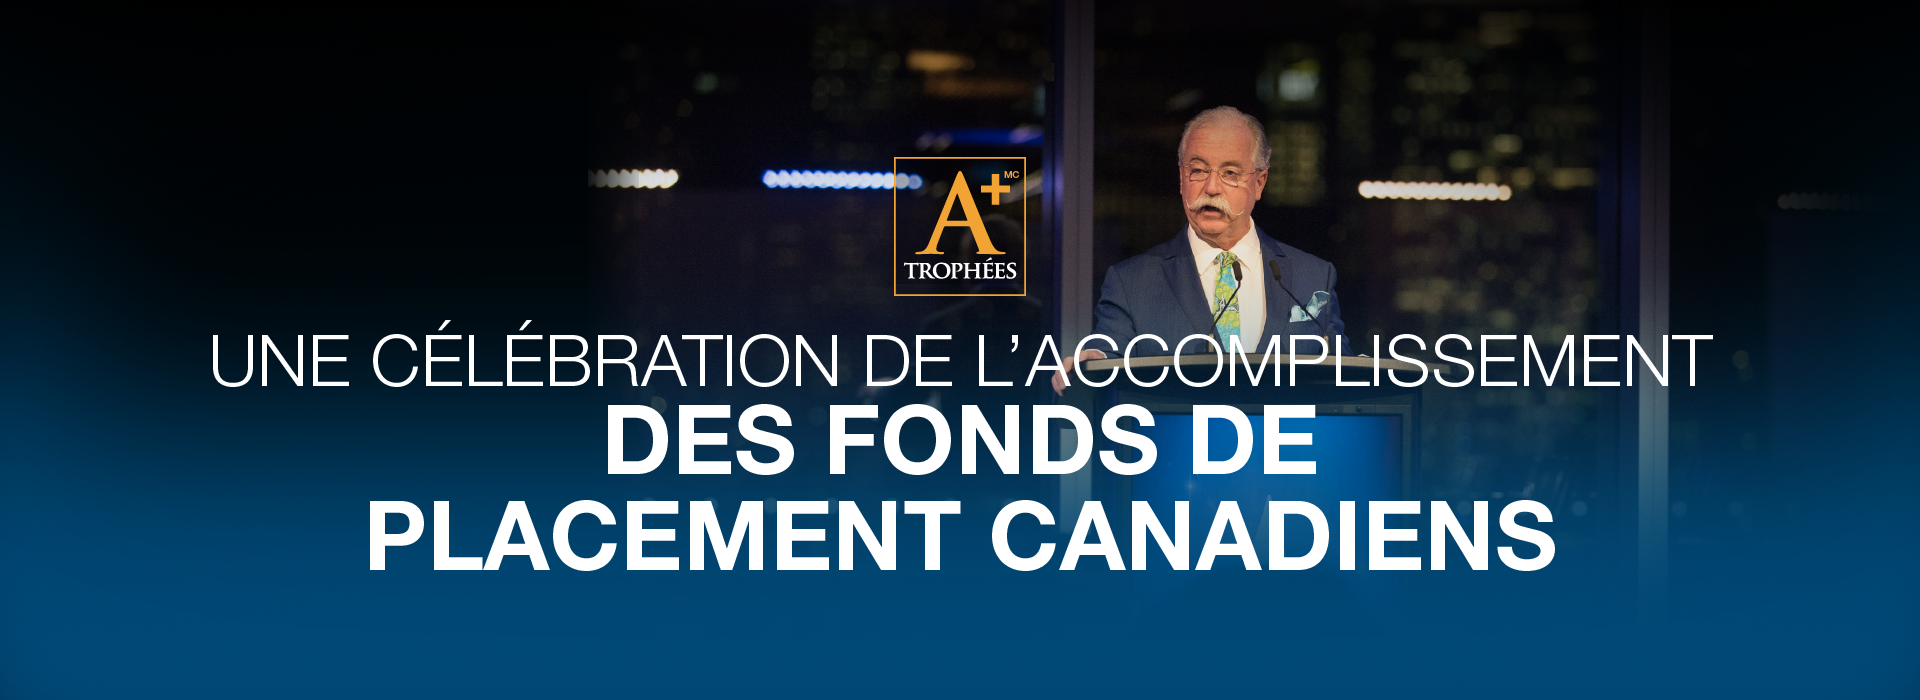 UNE CÉLÉBRATION DE L'ACCOMPLISSEMENT ENTRE FONDS DE PLACEMENT CANADIENS